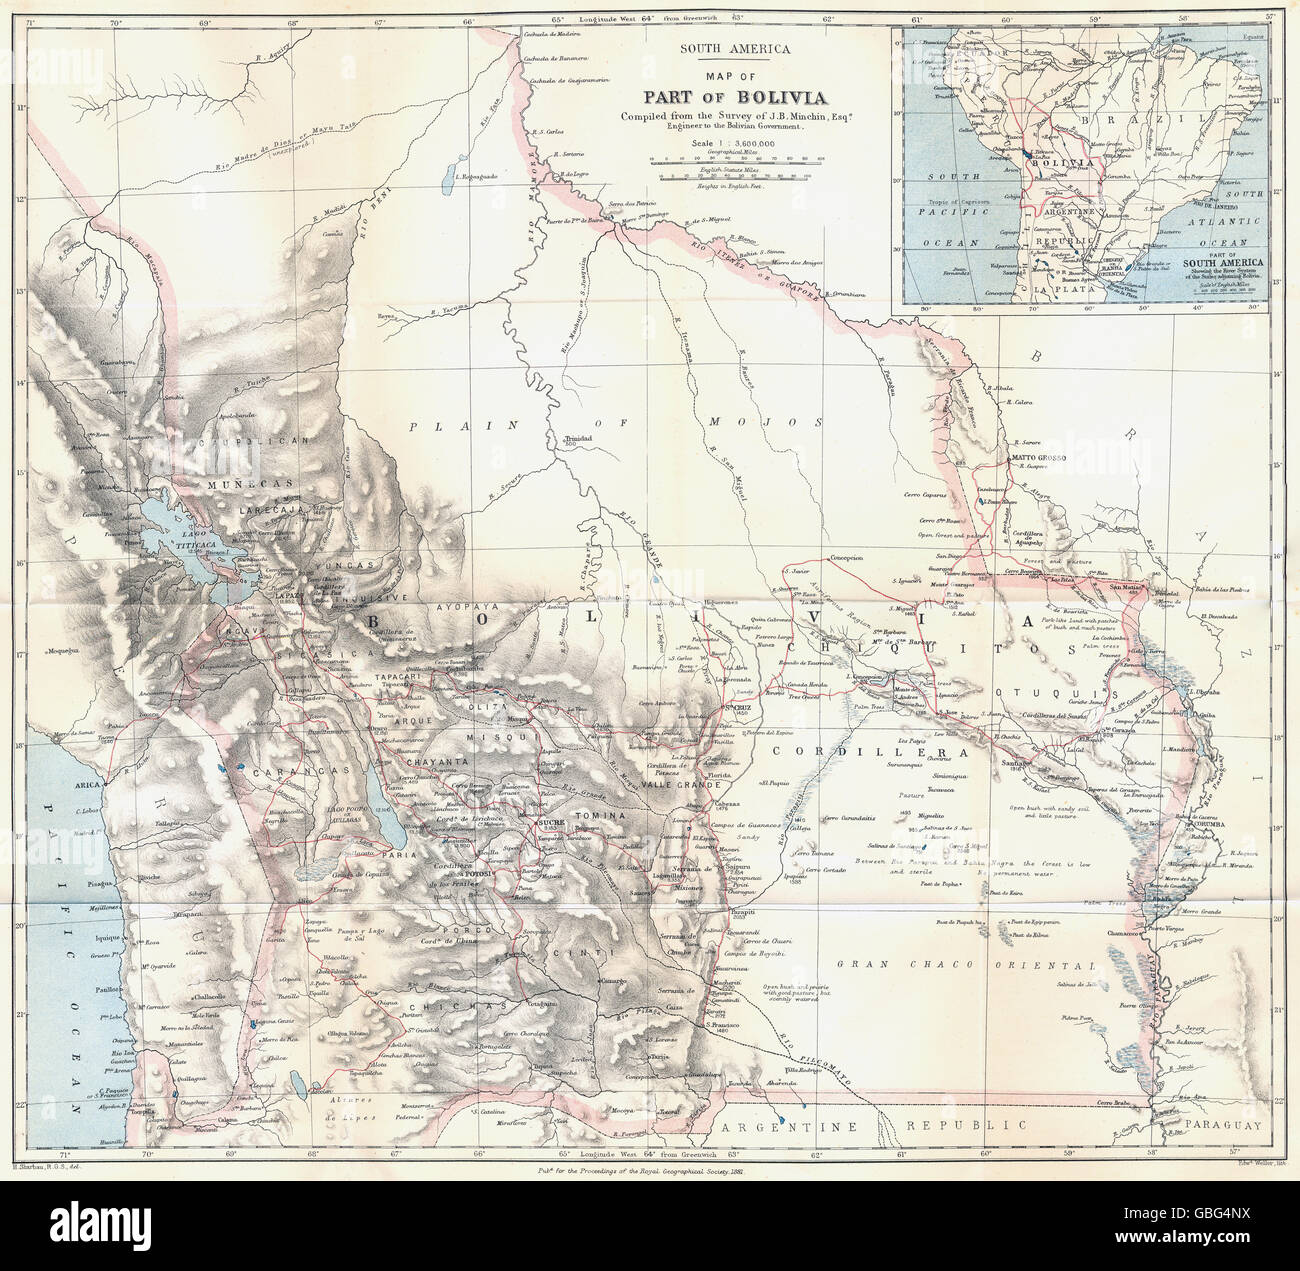 BOLIVIA: Pre War of the Pacific border changes. Surveyed Minchin. RGS, 1881 map - Stock Image